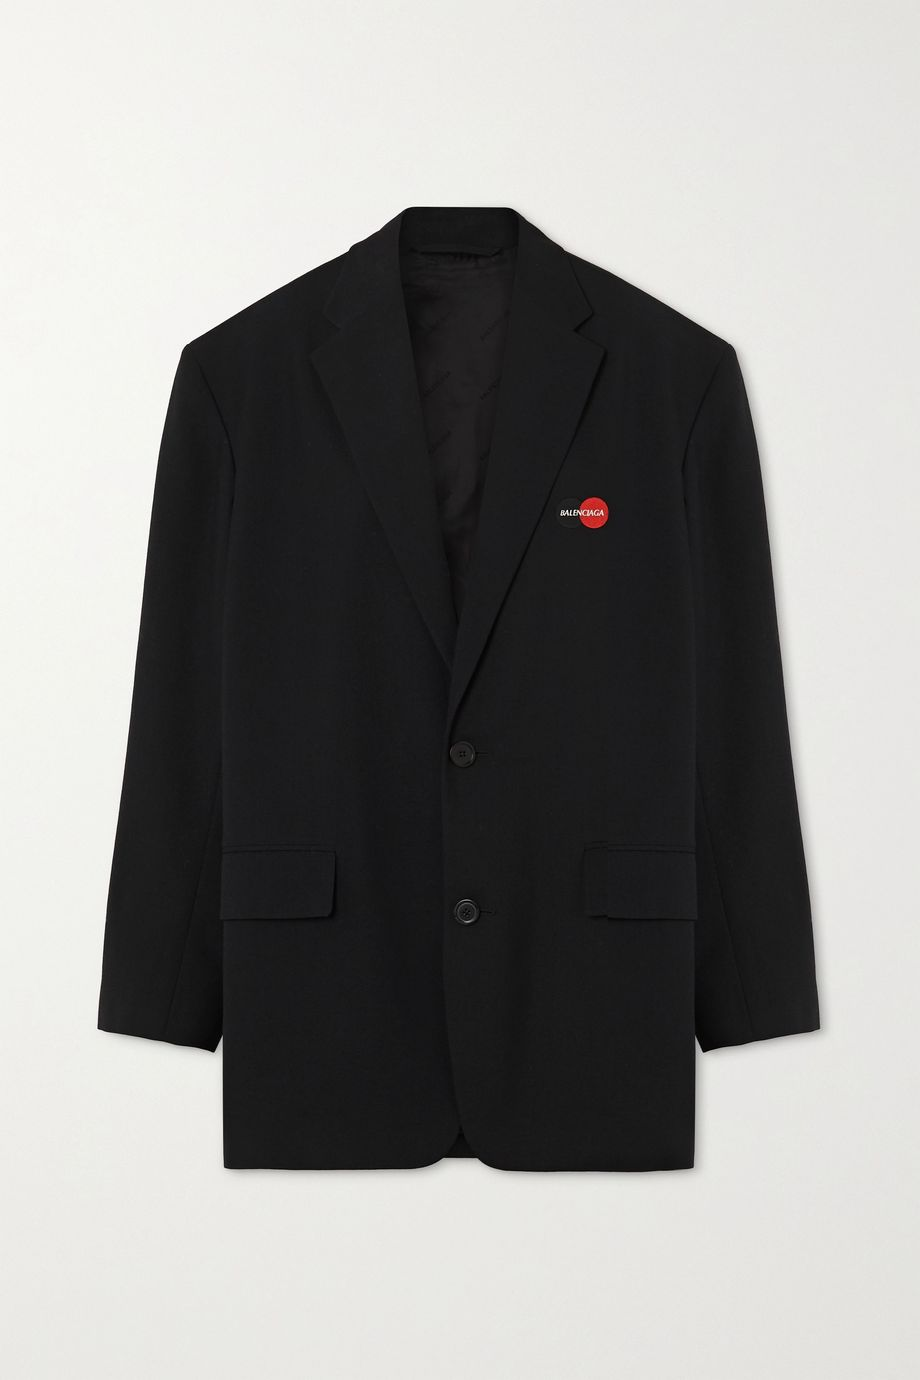 Balenciaga Oversized embroidered wool-blend twill blazer